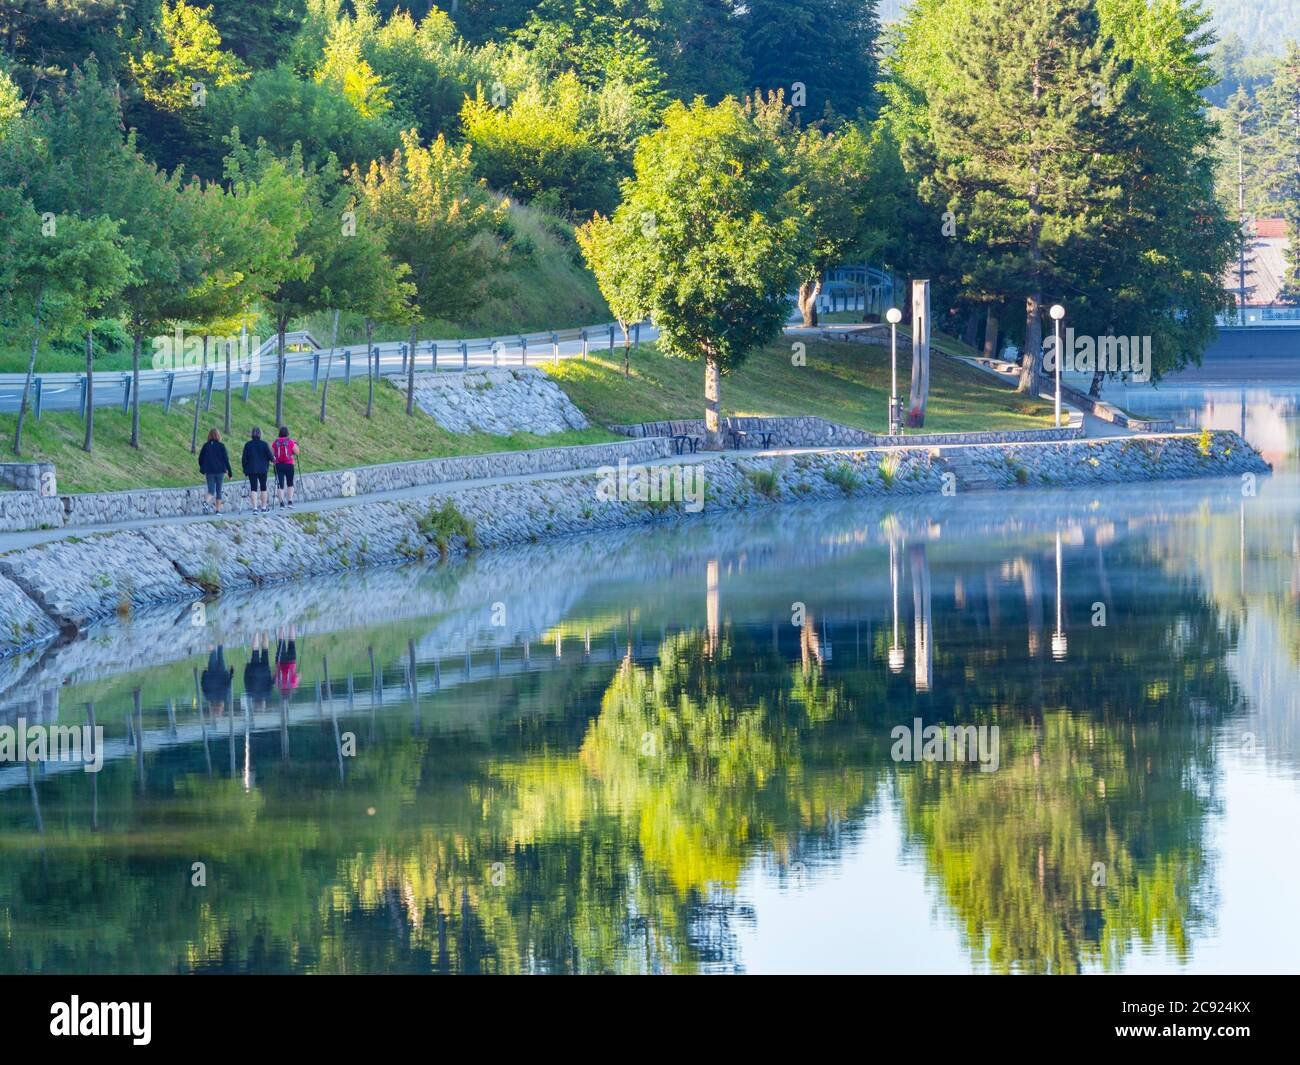 Morning joggers on coastline promenade on lake Bajer in Fuzine Croatia Europe Stock Photo